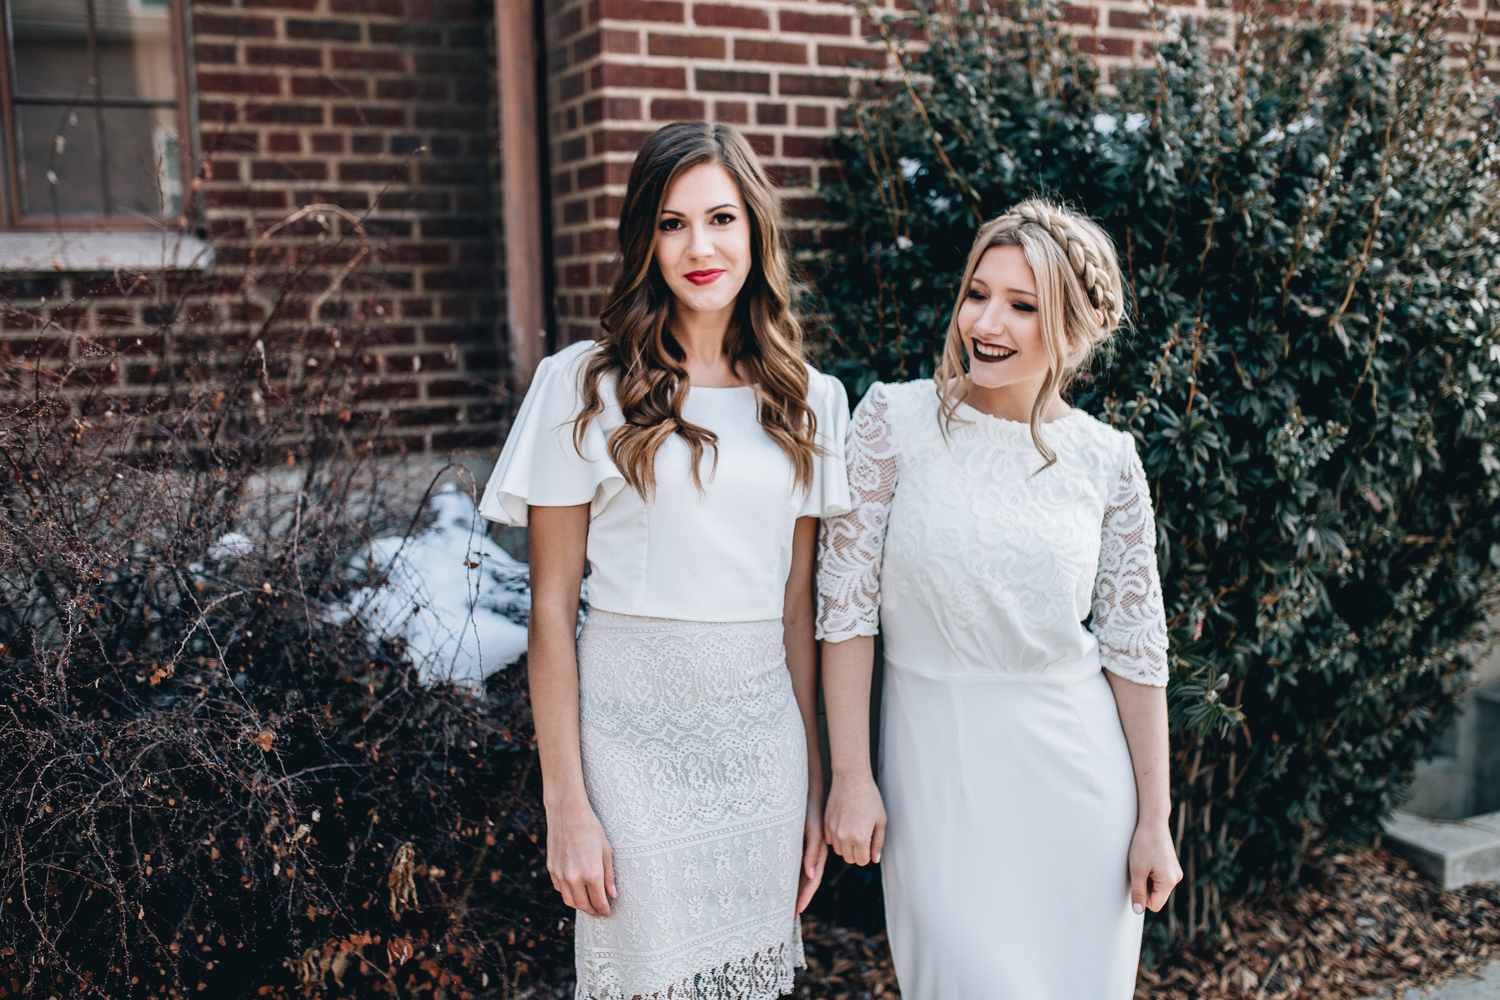 DETAILS  Styling by: Lucy Bergstrom  Photography by: Alice Cannon  Dress by: Aleksandra Salo  Flutter Sleeve Top by: Natalie Wynn  Lace Skirt by: Janay Marie  Makeup by: Rachel Kae Jenkins  Rentals provided by: Refined Vintage Events  Models: Joan Brown & Josilyn Harsh